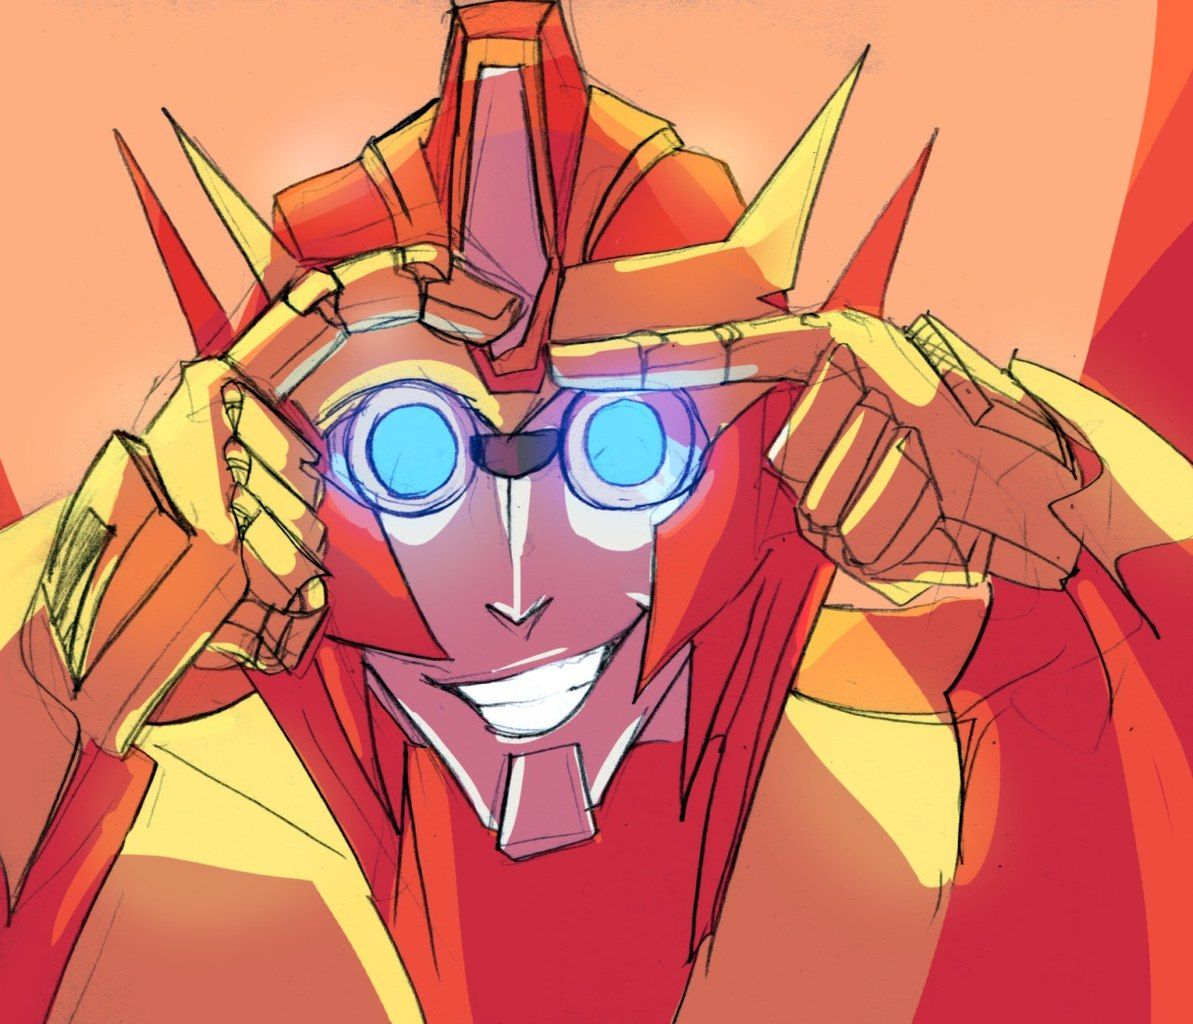 Rodimus, give Rung his glasses back! Yes, you look absolutely adorable, but those are Rung's